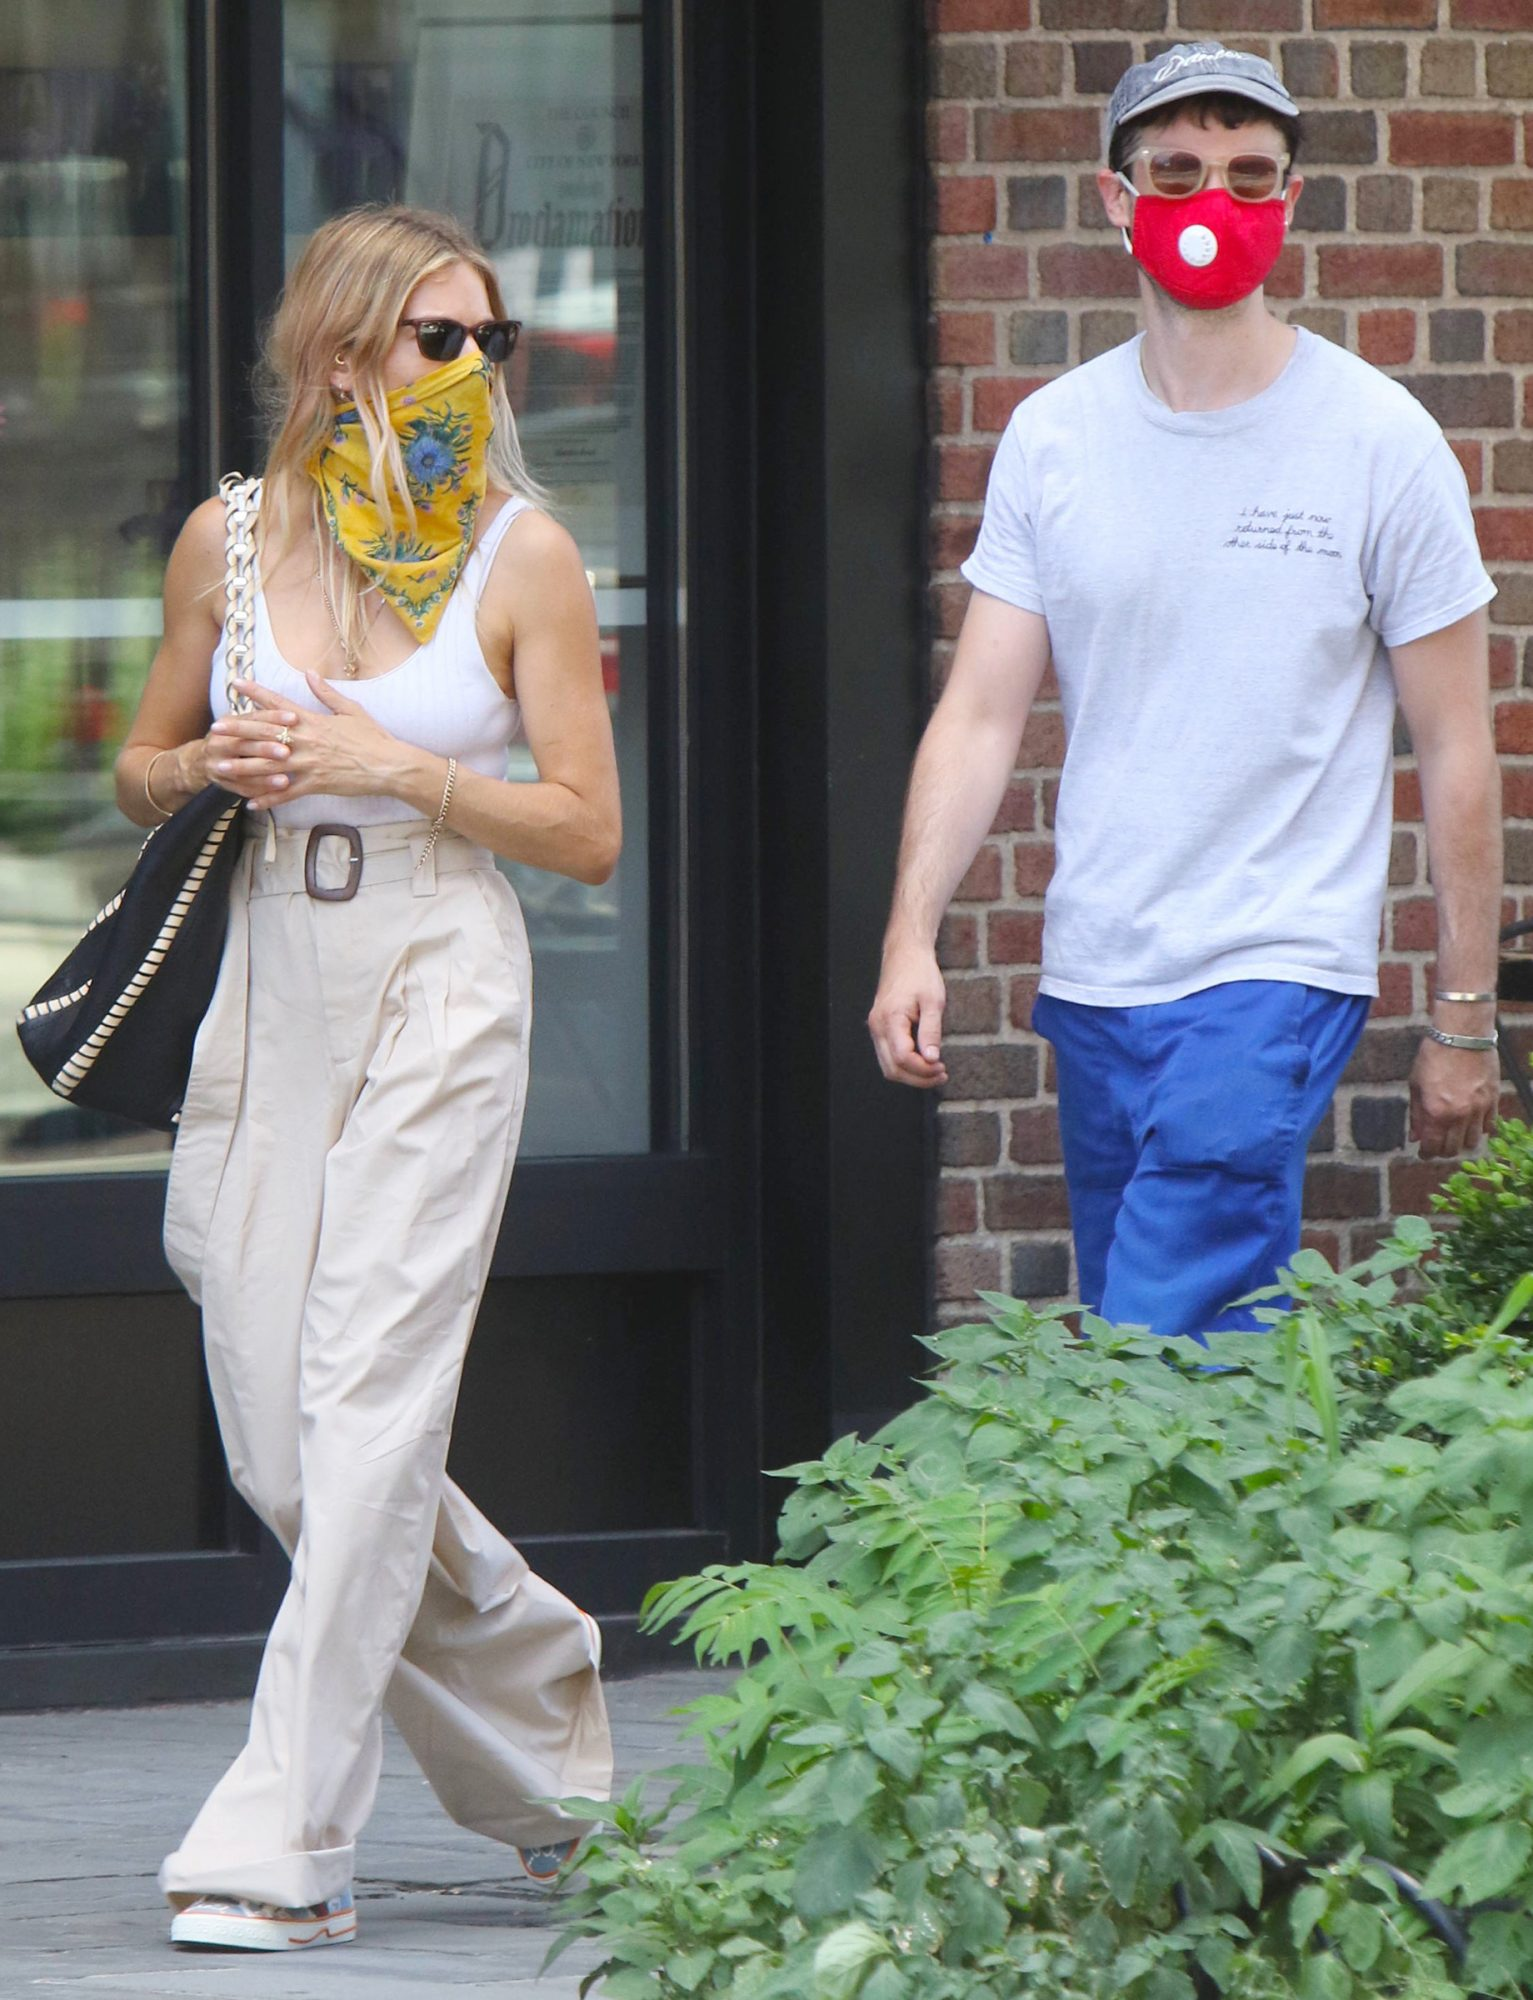 Sienna Miller and Tom Sturridge are seen on July 28, 2020 in New York City